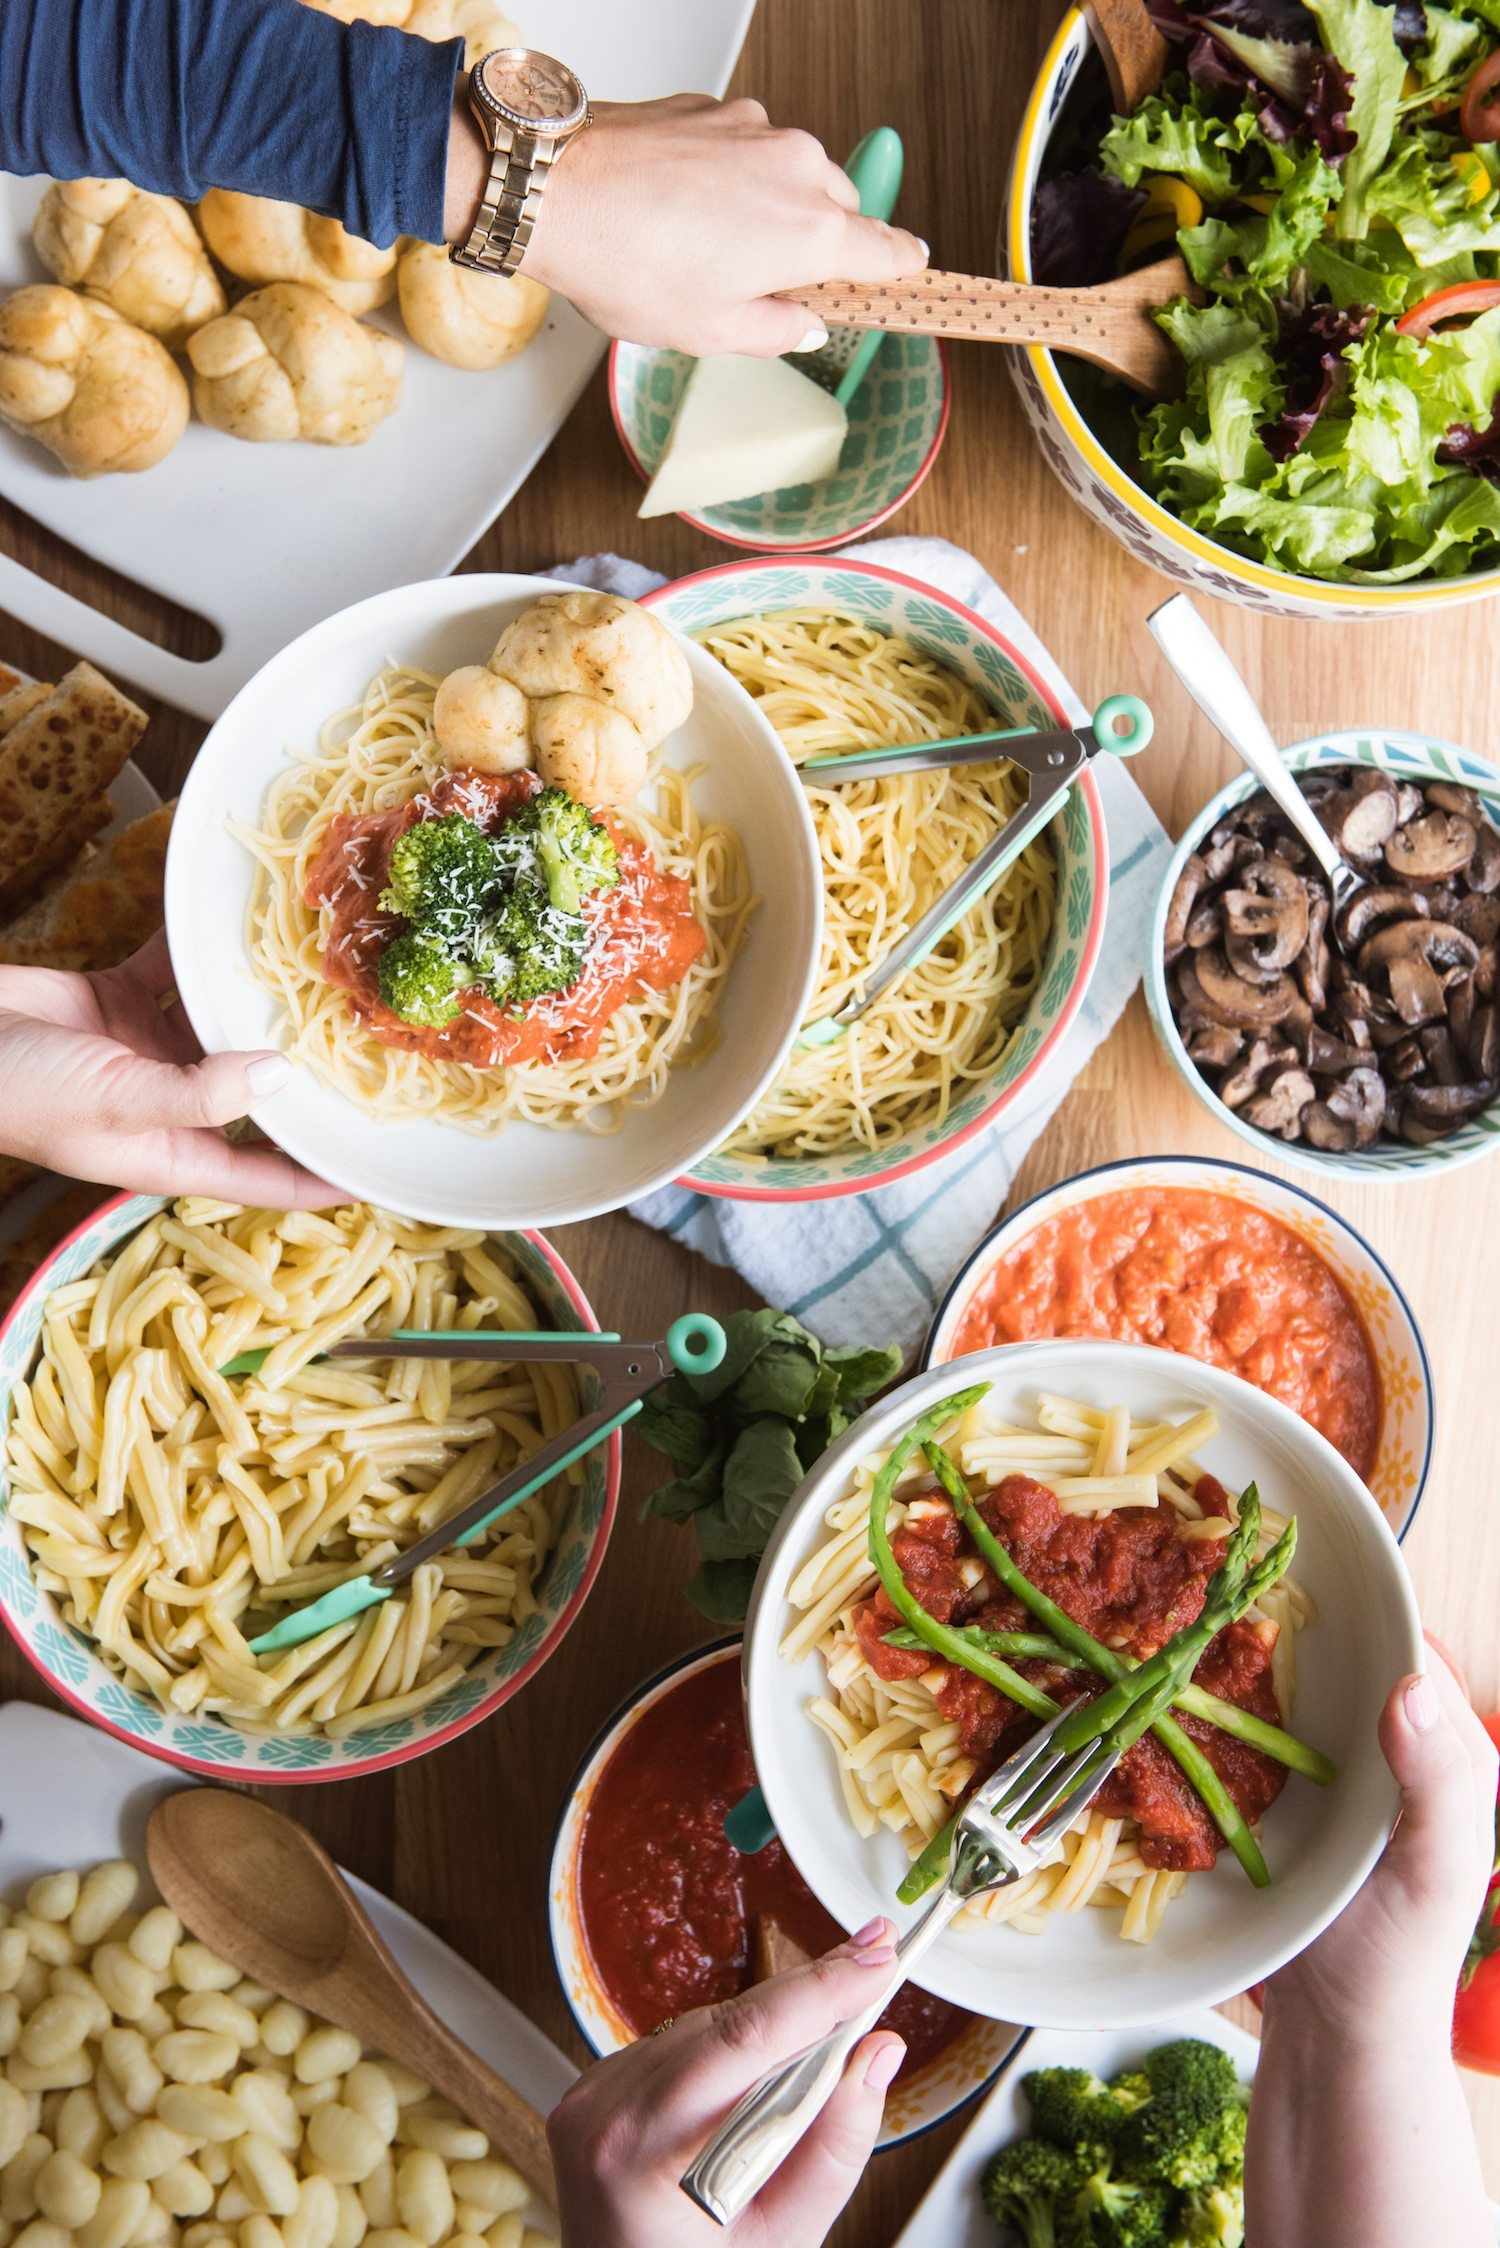 Host An Awesome Dinner Party With A Make Your Own Pasta Bar Pasta Bar Make Your Own Pasta Super Easy Dinner